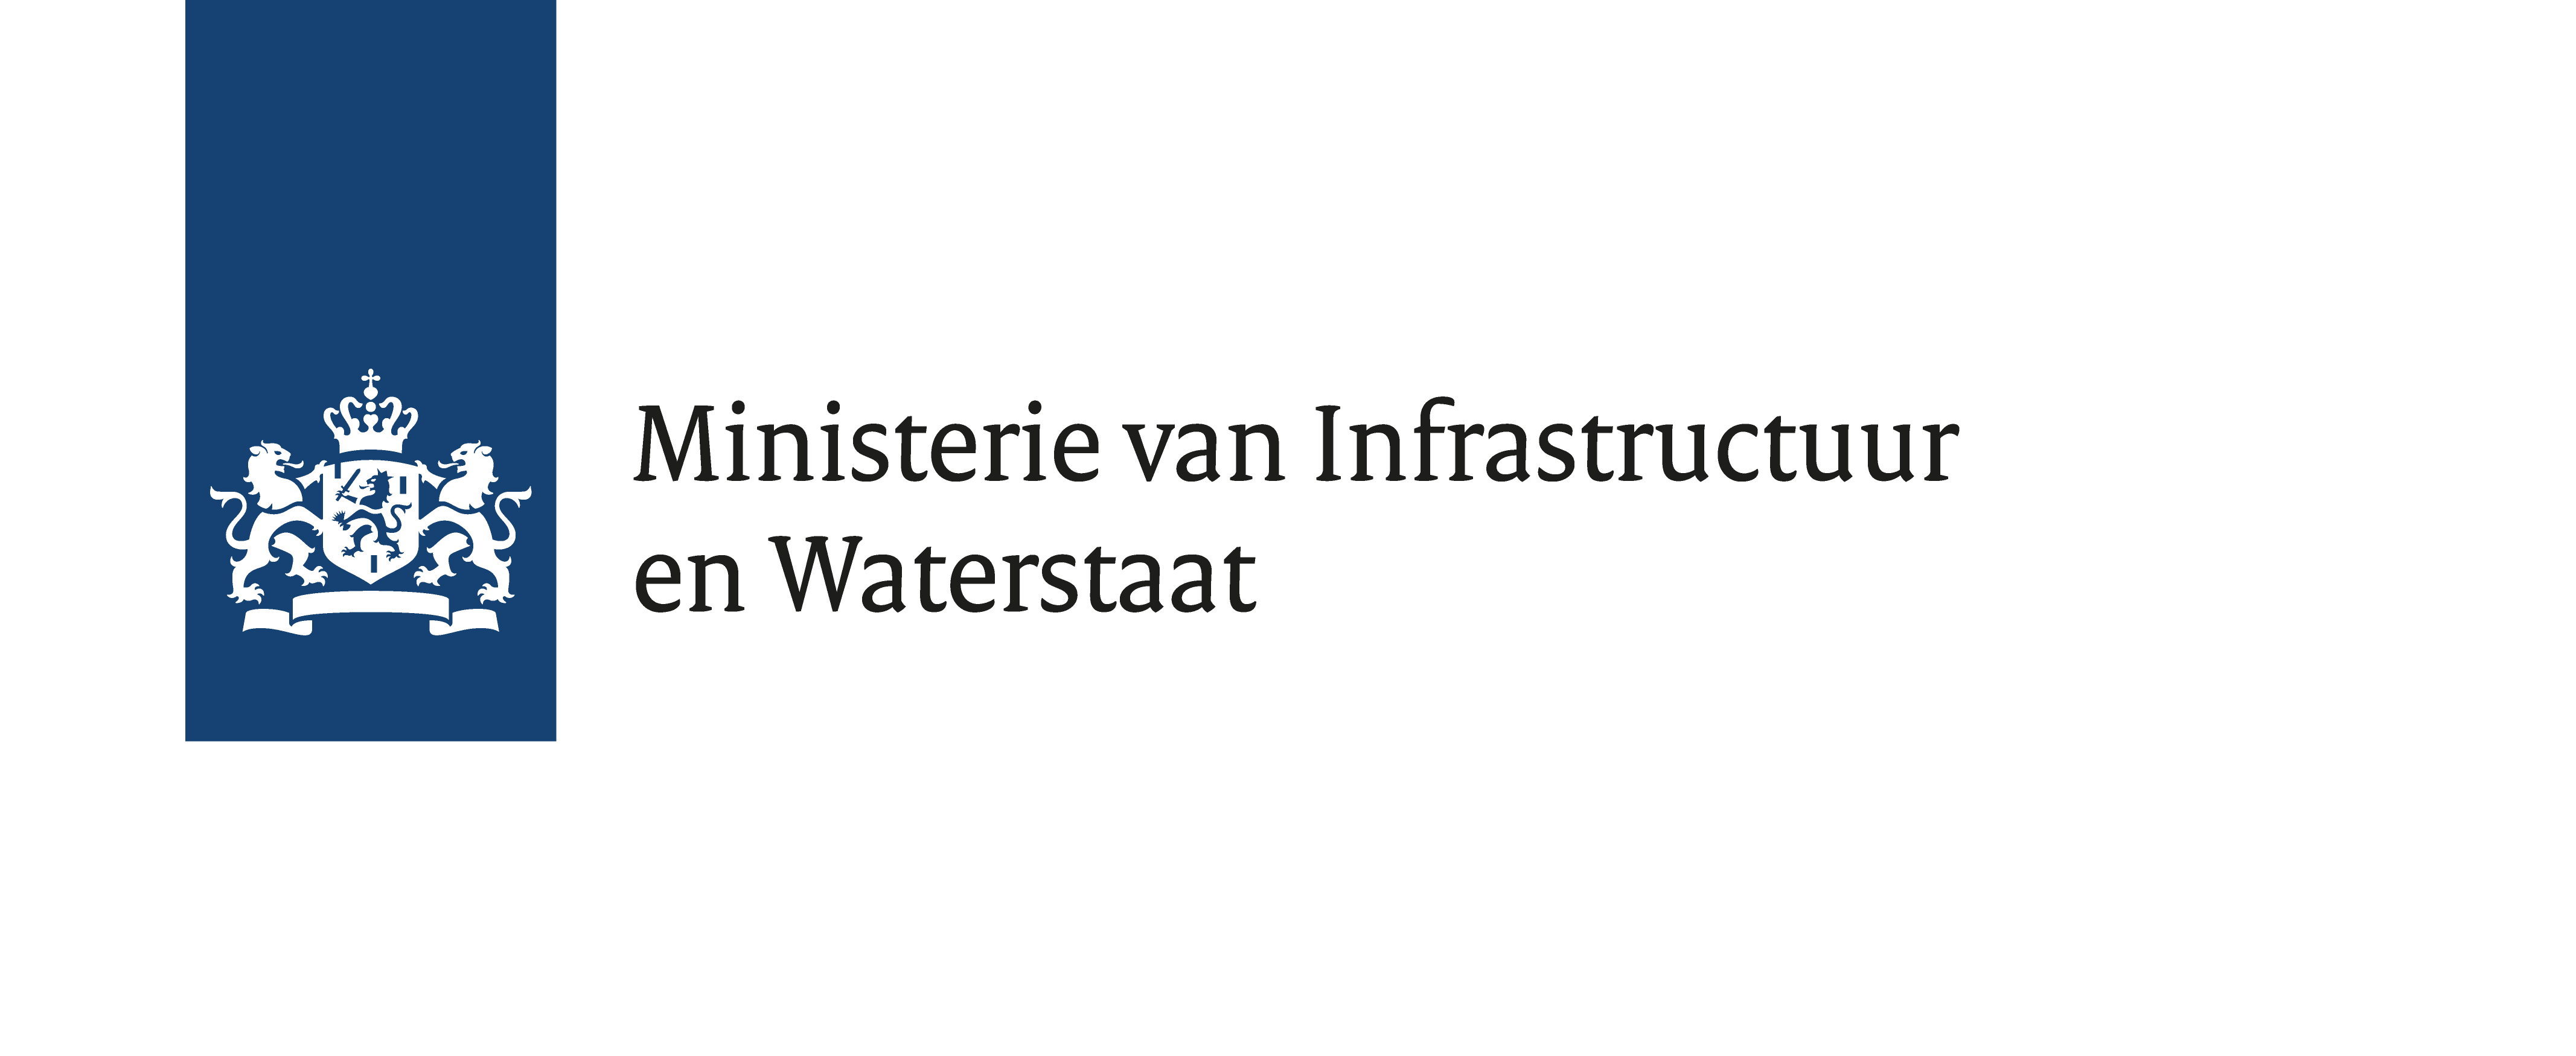 https://europeanplasticspact.org/wp-content/uploads/2020/03/Ministry-of-Infrastructure-and-Watermanagement-The-Netherlands.png